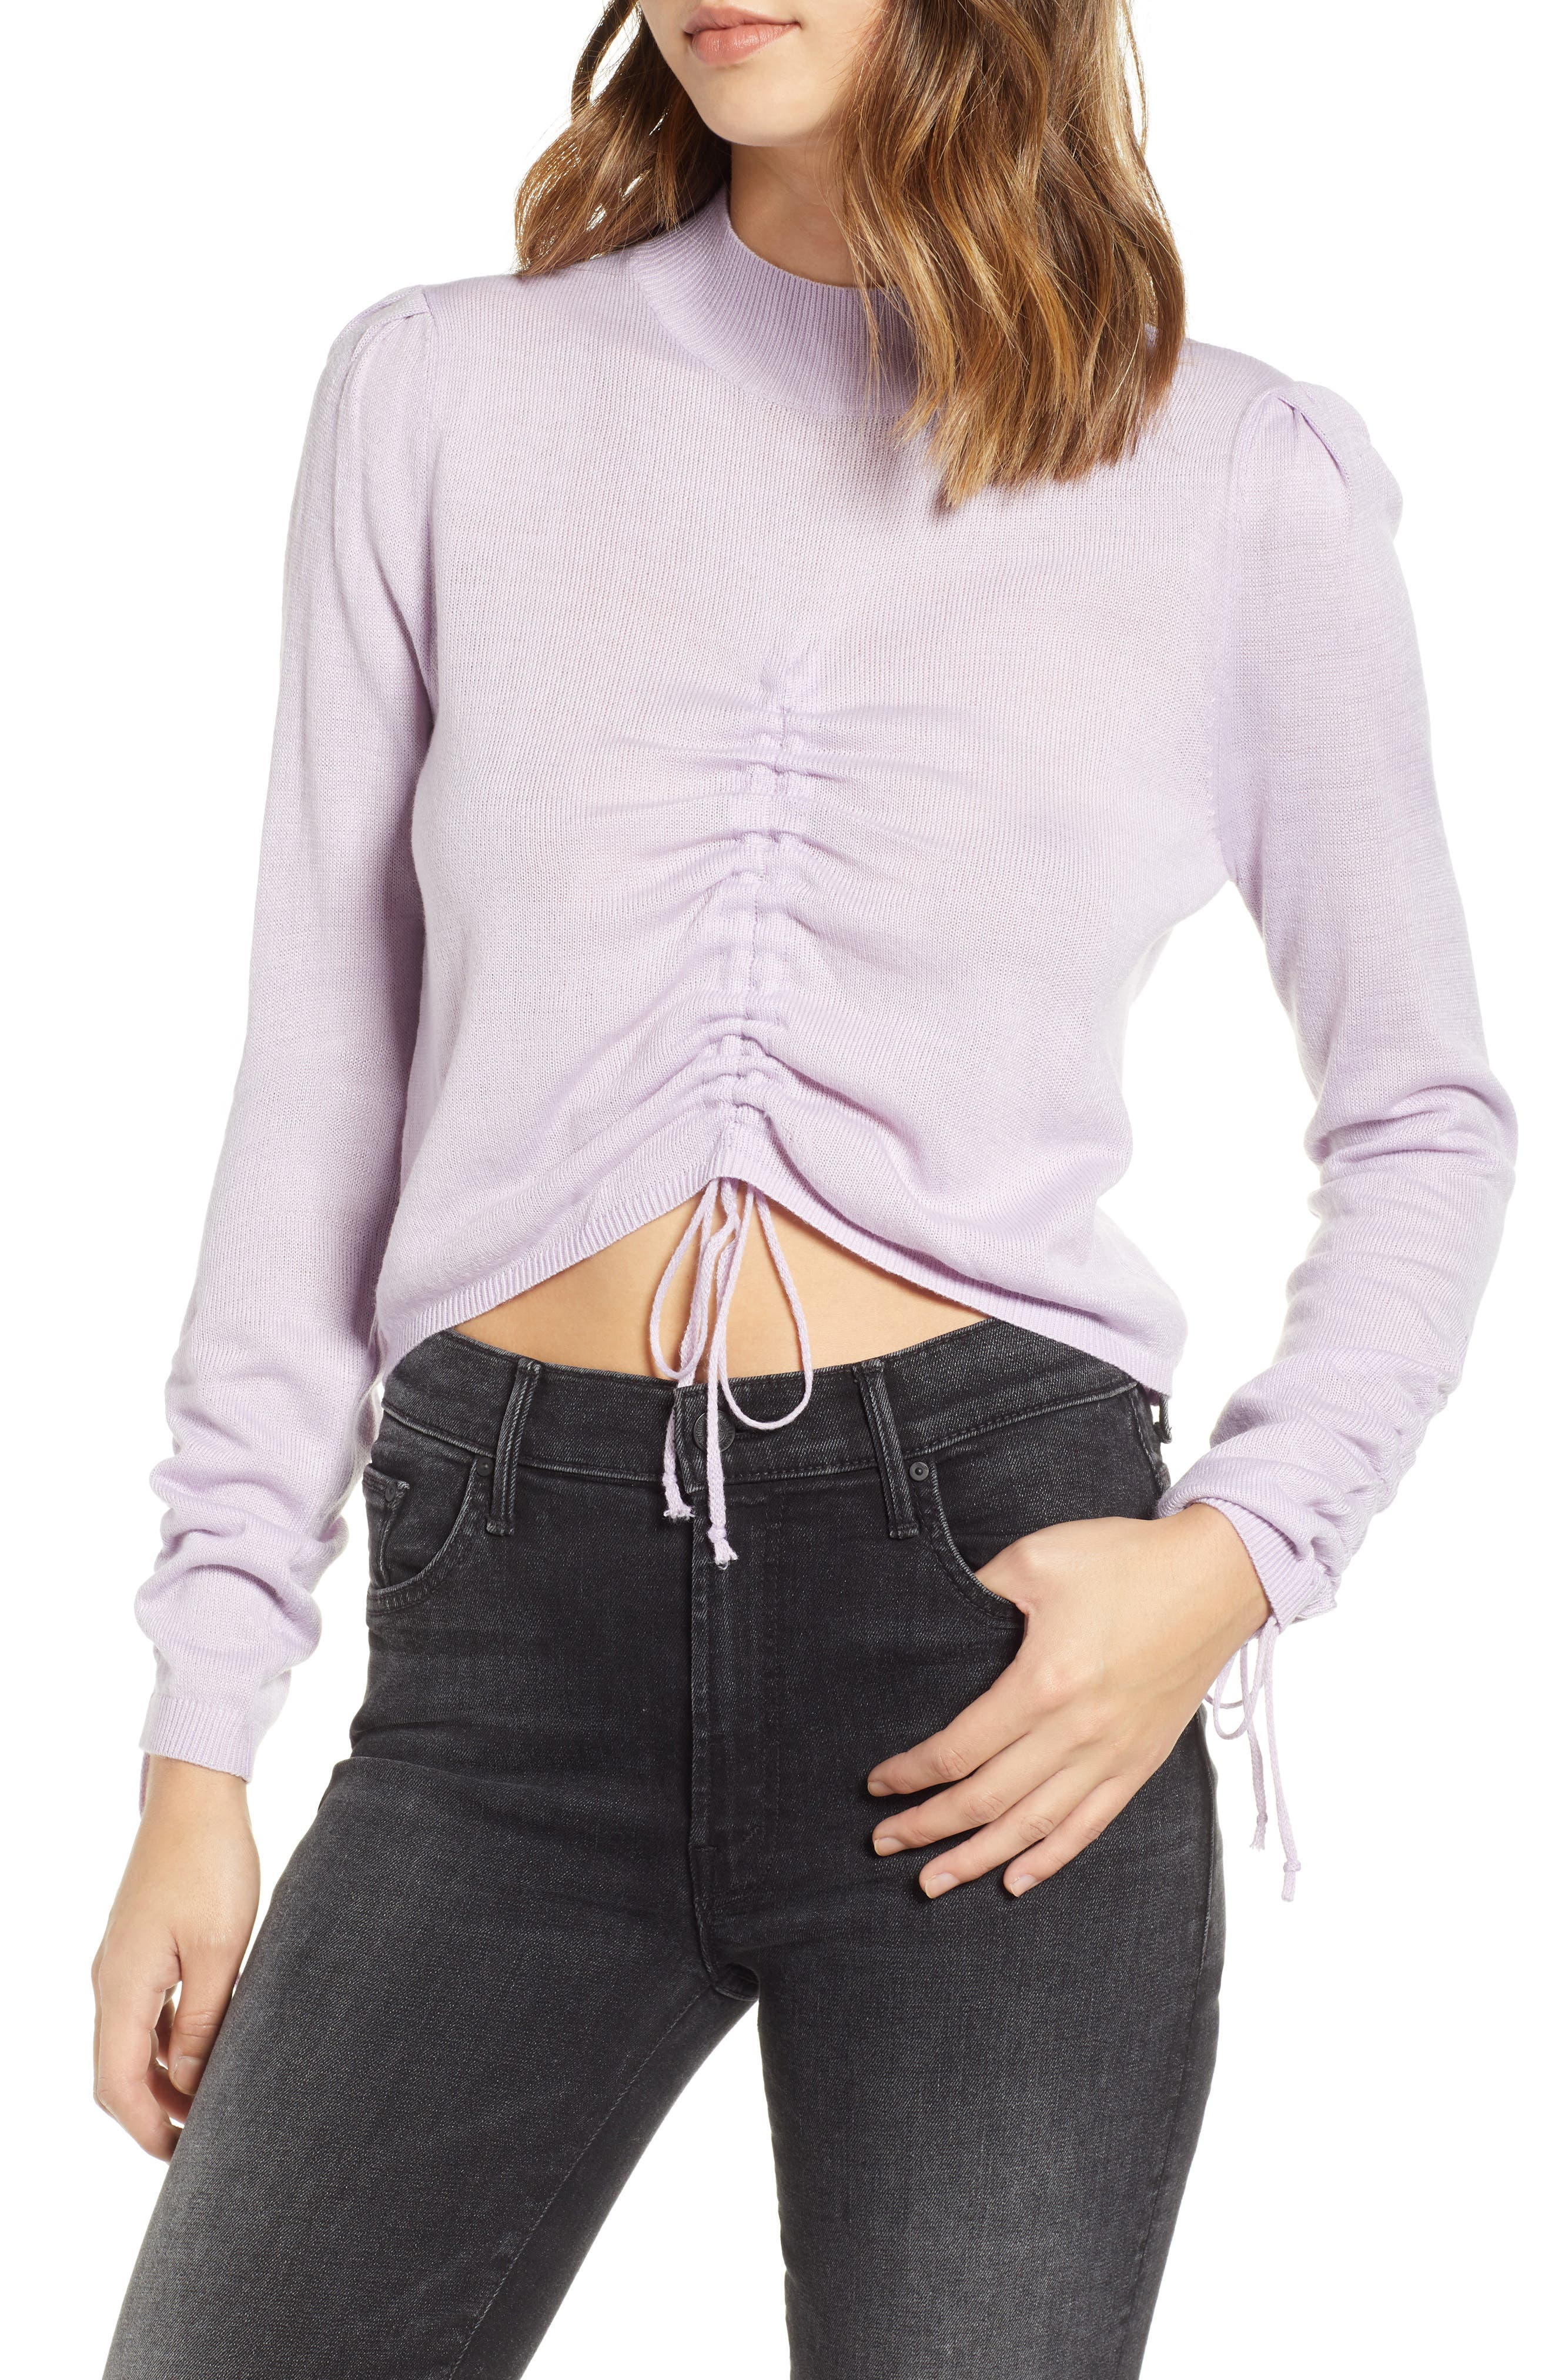 JOA Ruched Drawstring Cropped Sweater in Lavender